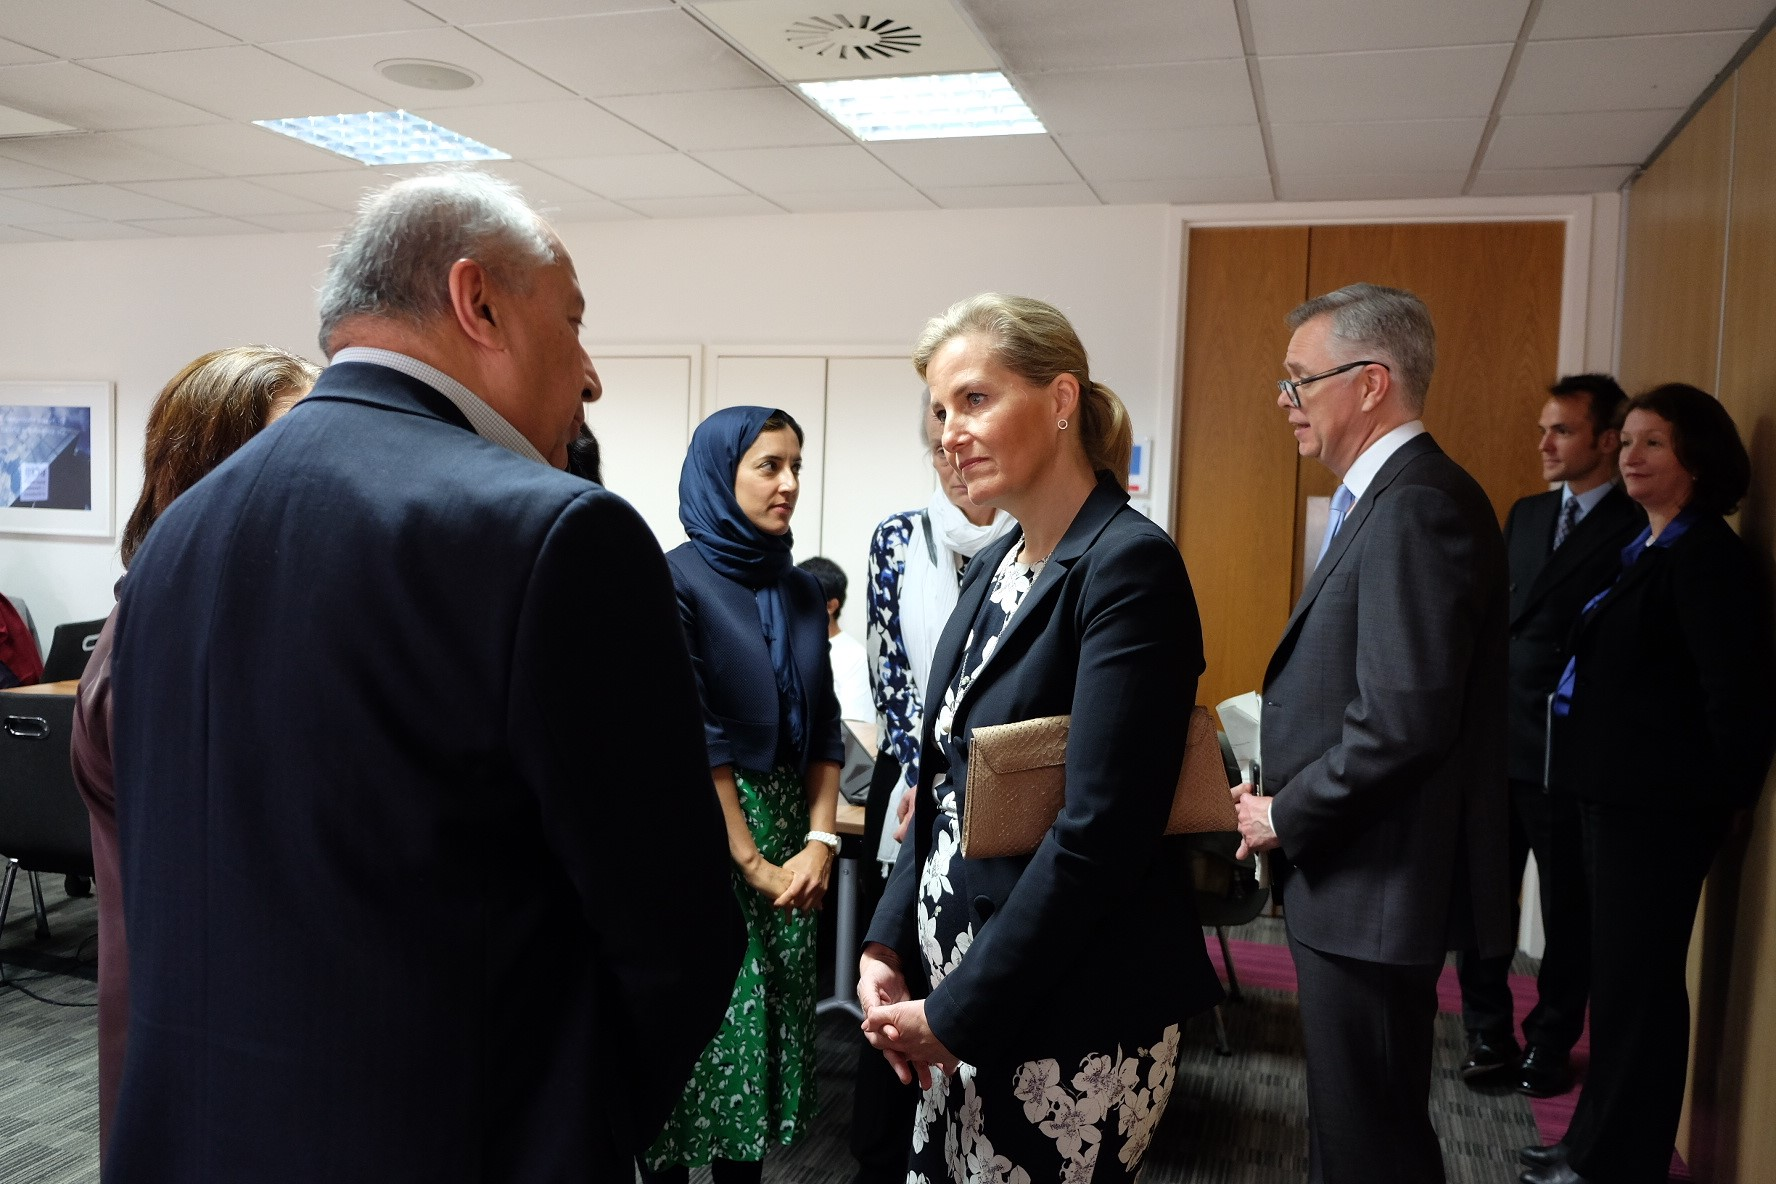 The Countess of Wessex attends The Commonwealth Eye Health Consortium 2019